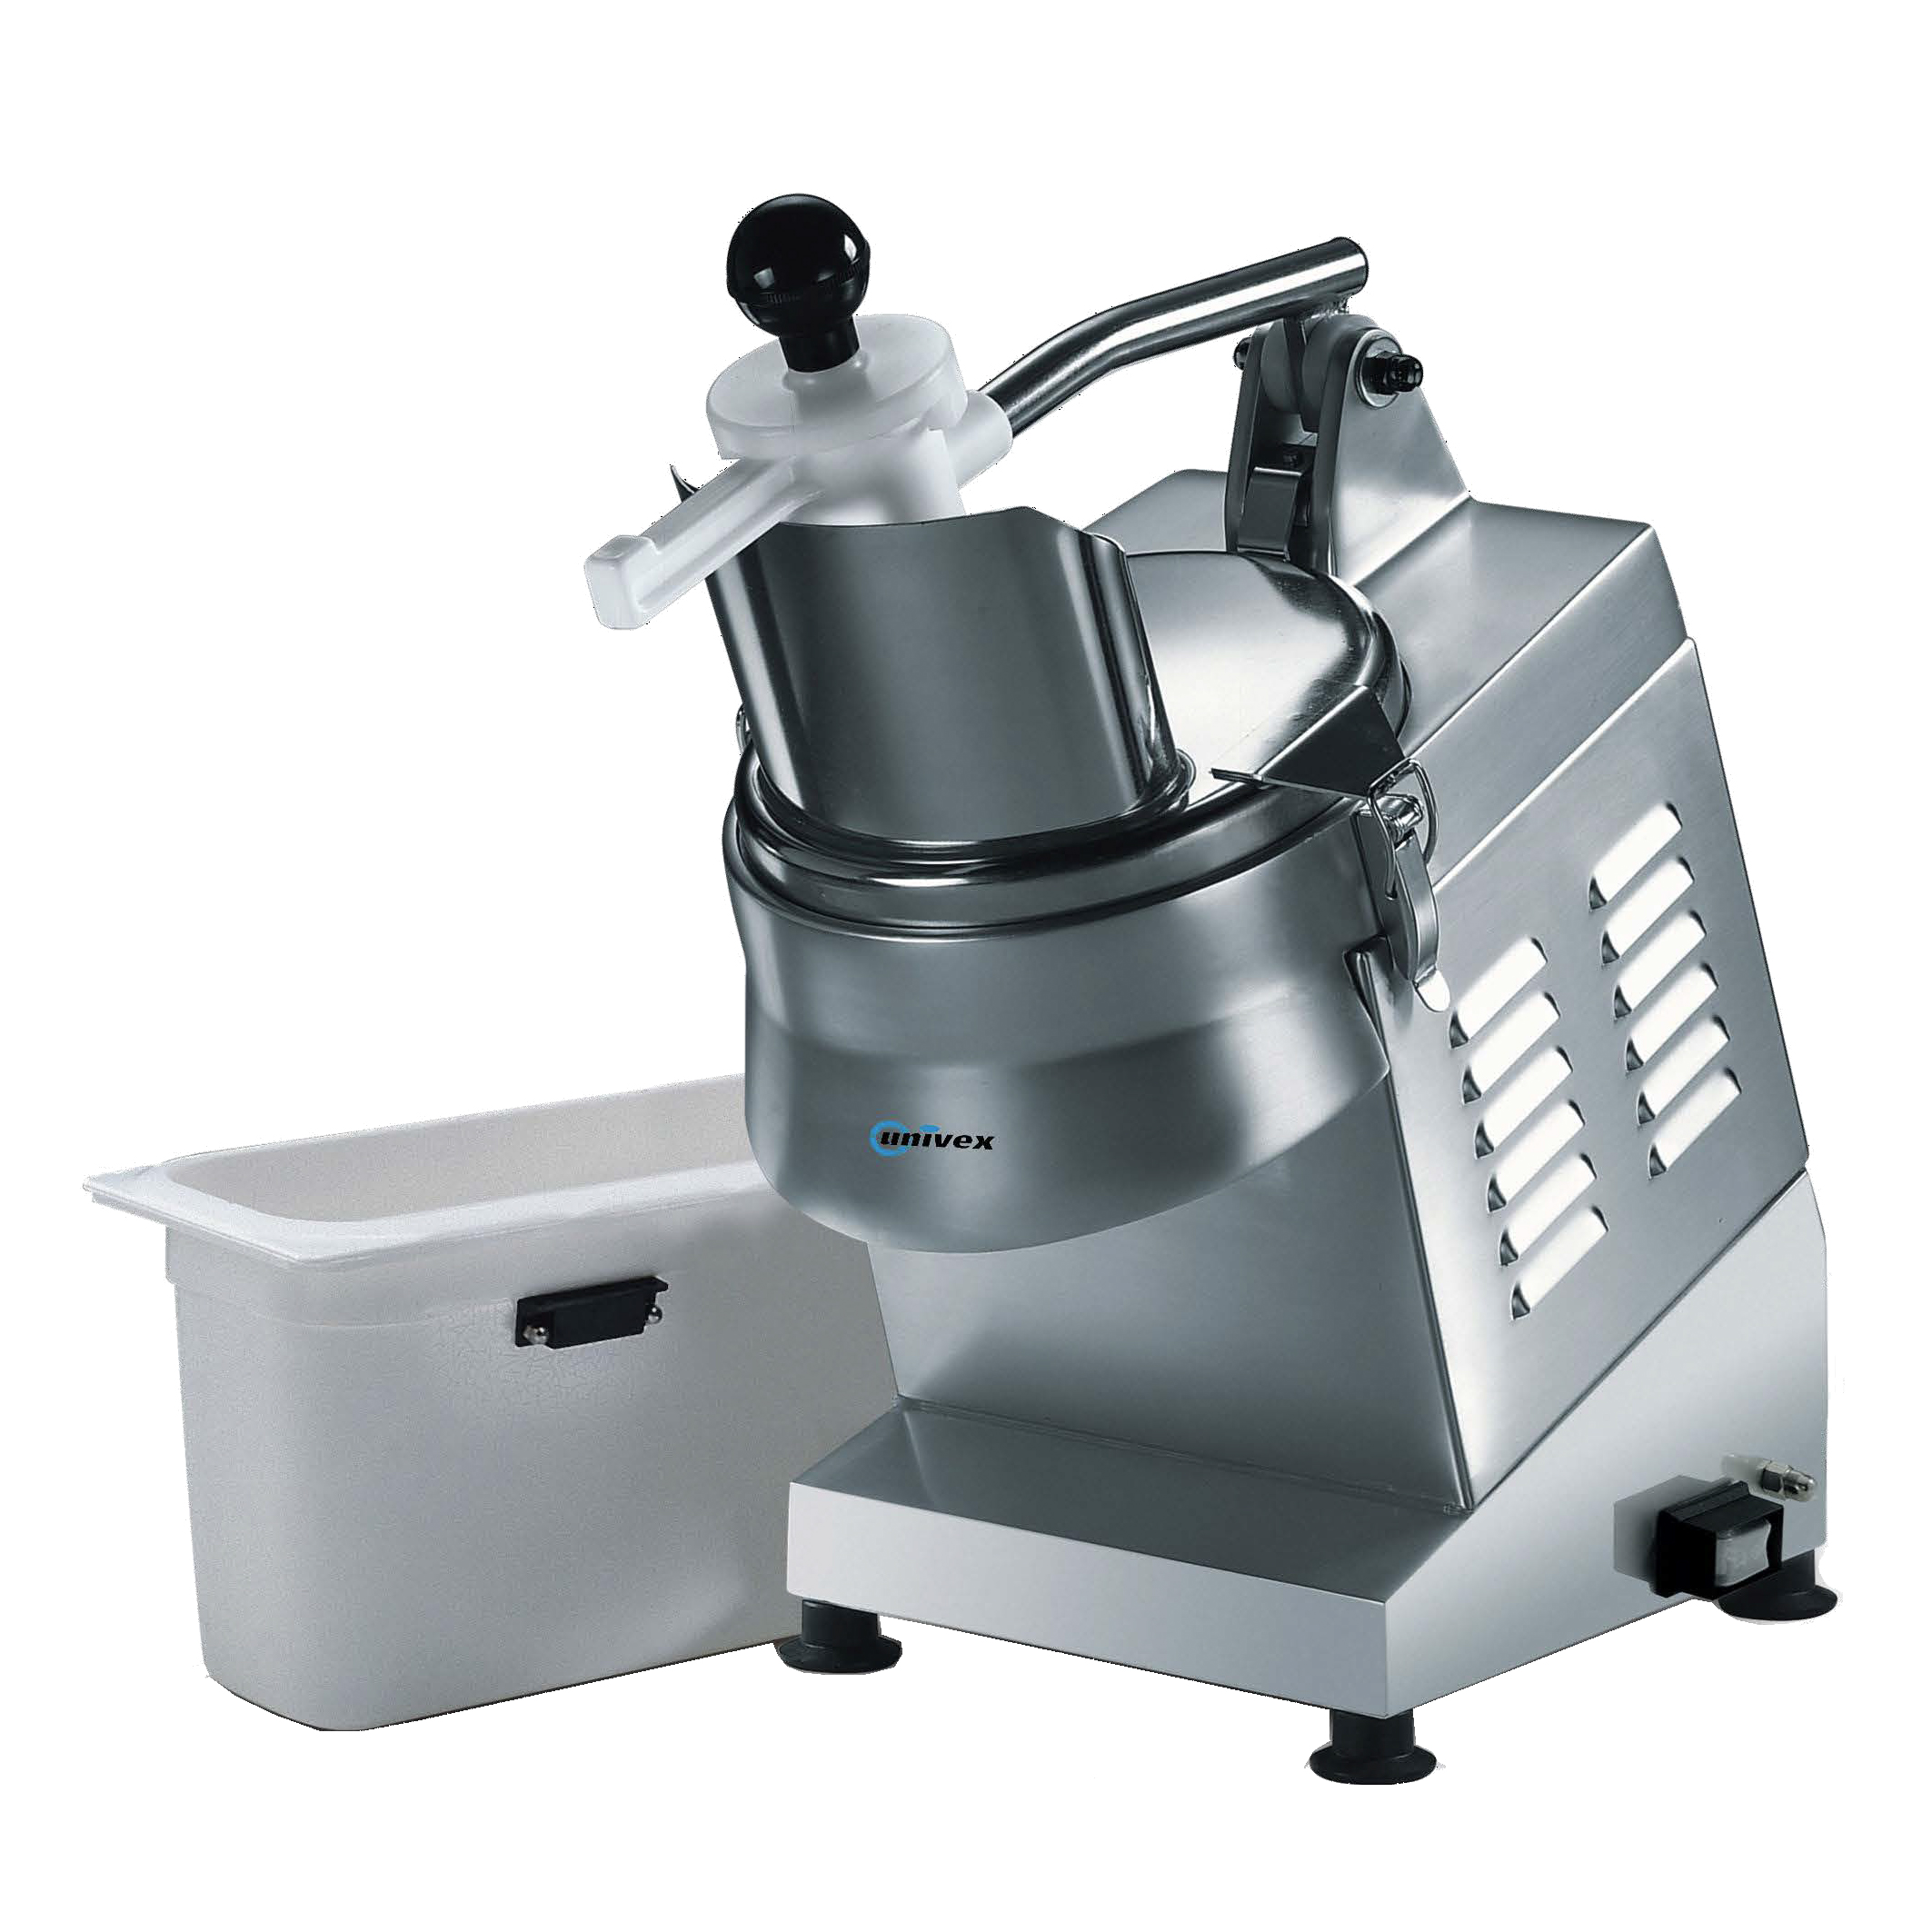 Univex UFP13 food processor, benchtop / countertop